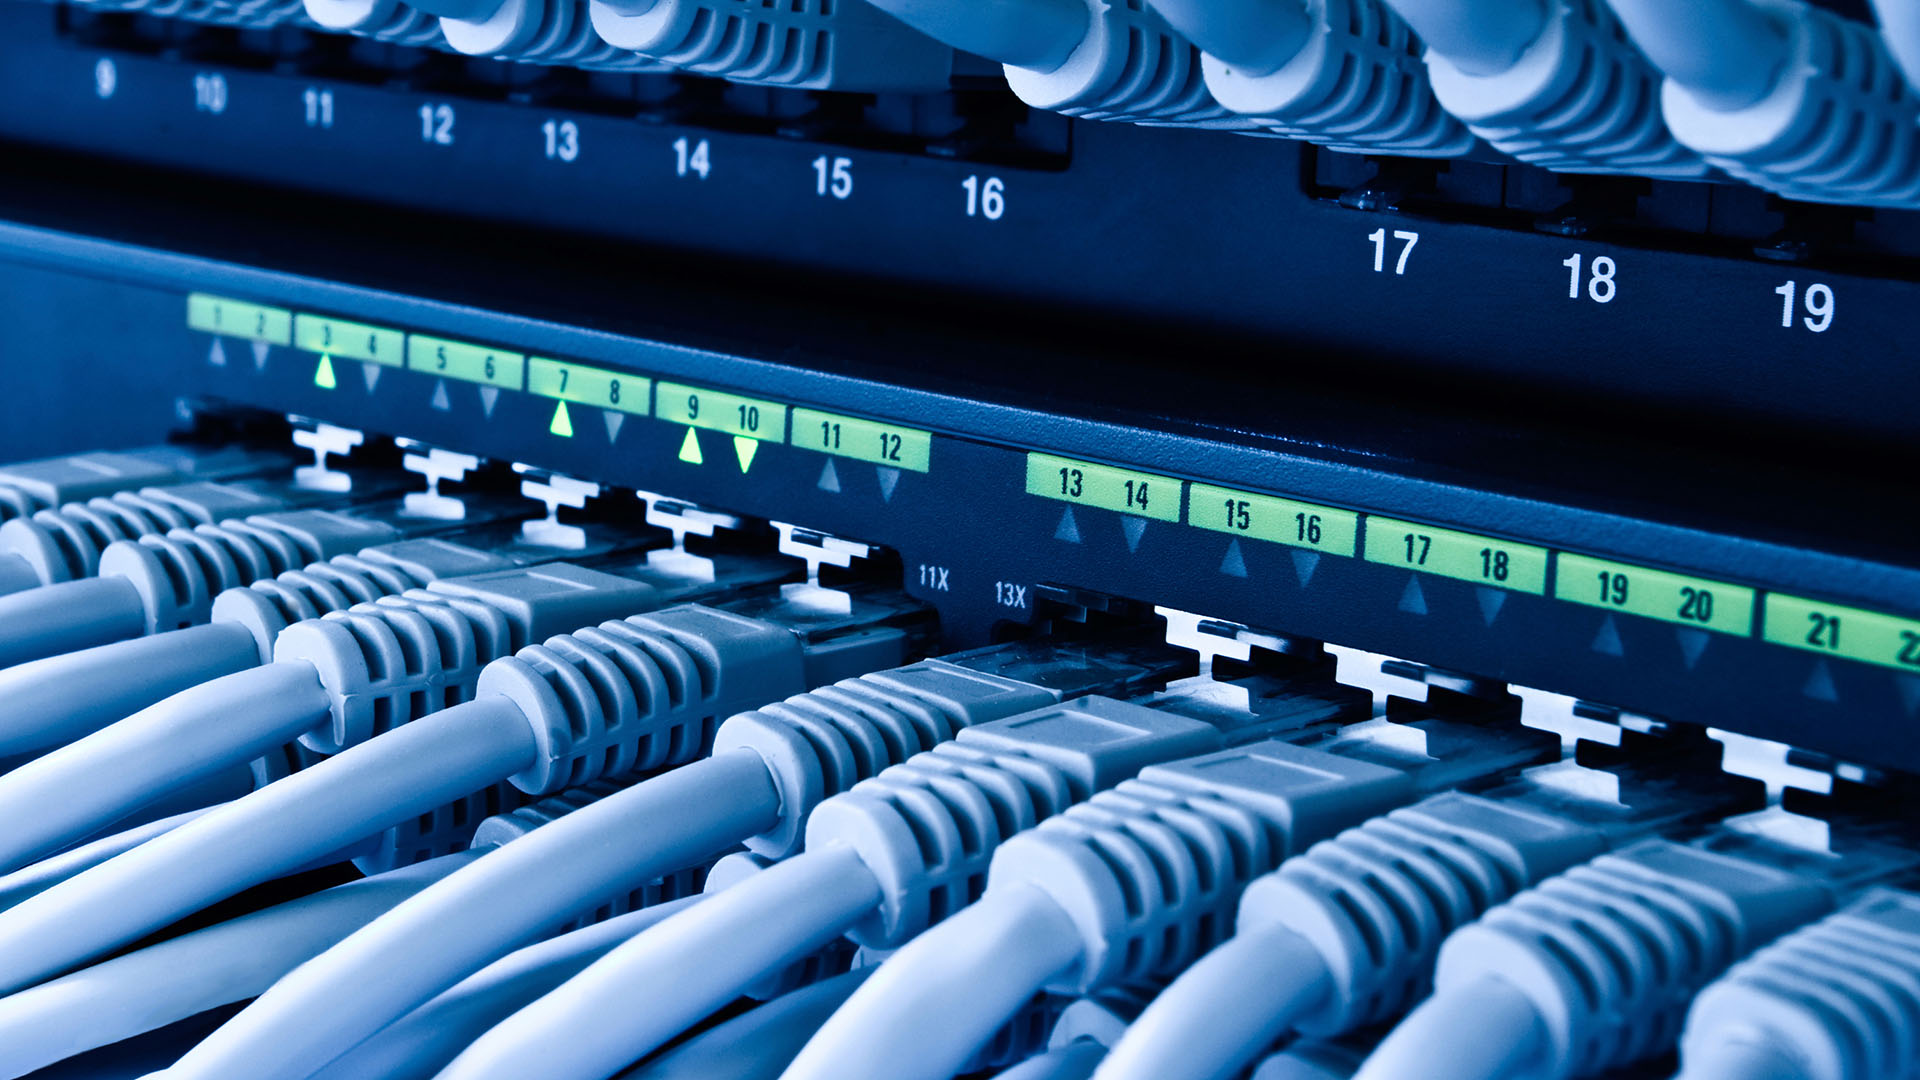 Crestwood Kentucky Preferred Voice & Data Network Cabling Solutions